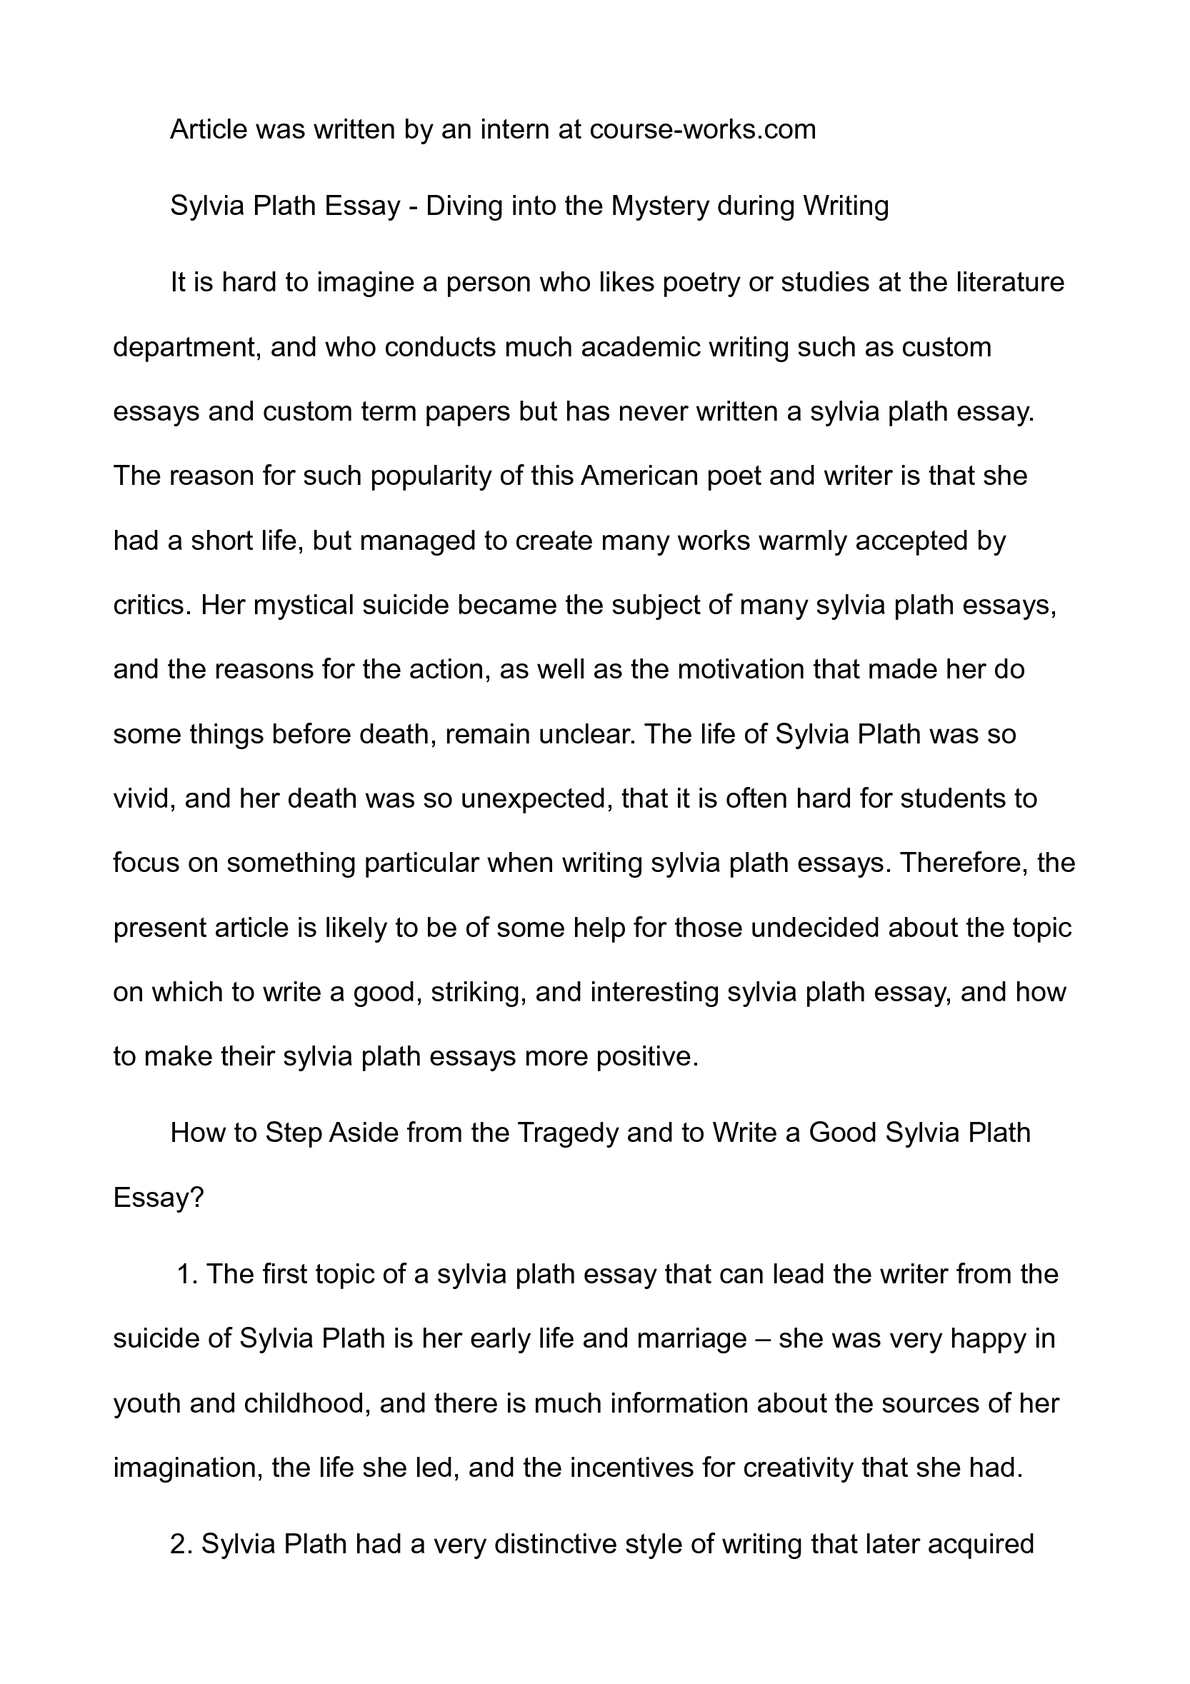 My Favorite Essay  Intro Paragraphs For Essays also Research Essay Samples Calamo  Sylvia Plath Essay  Diving Into The Mystery  Joy Luck Club Essay